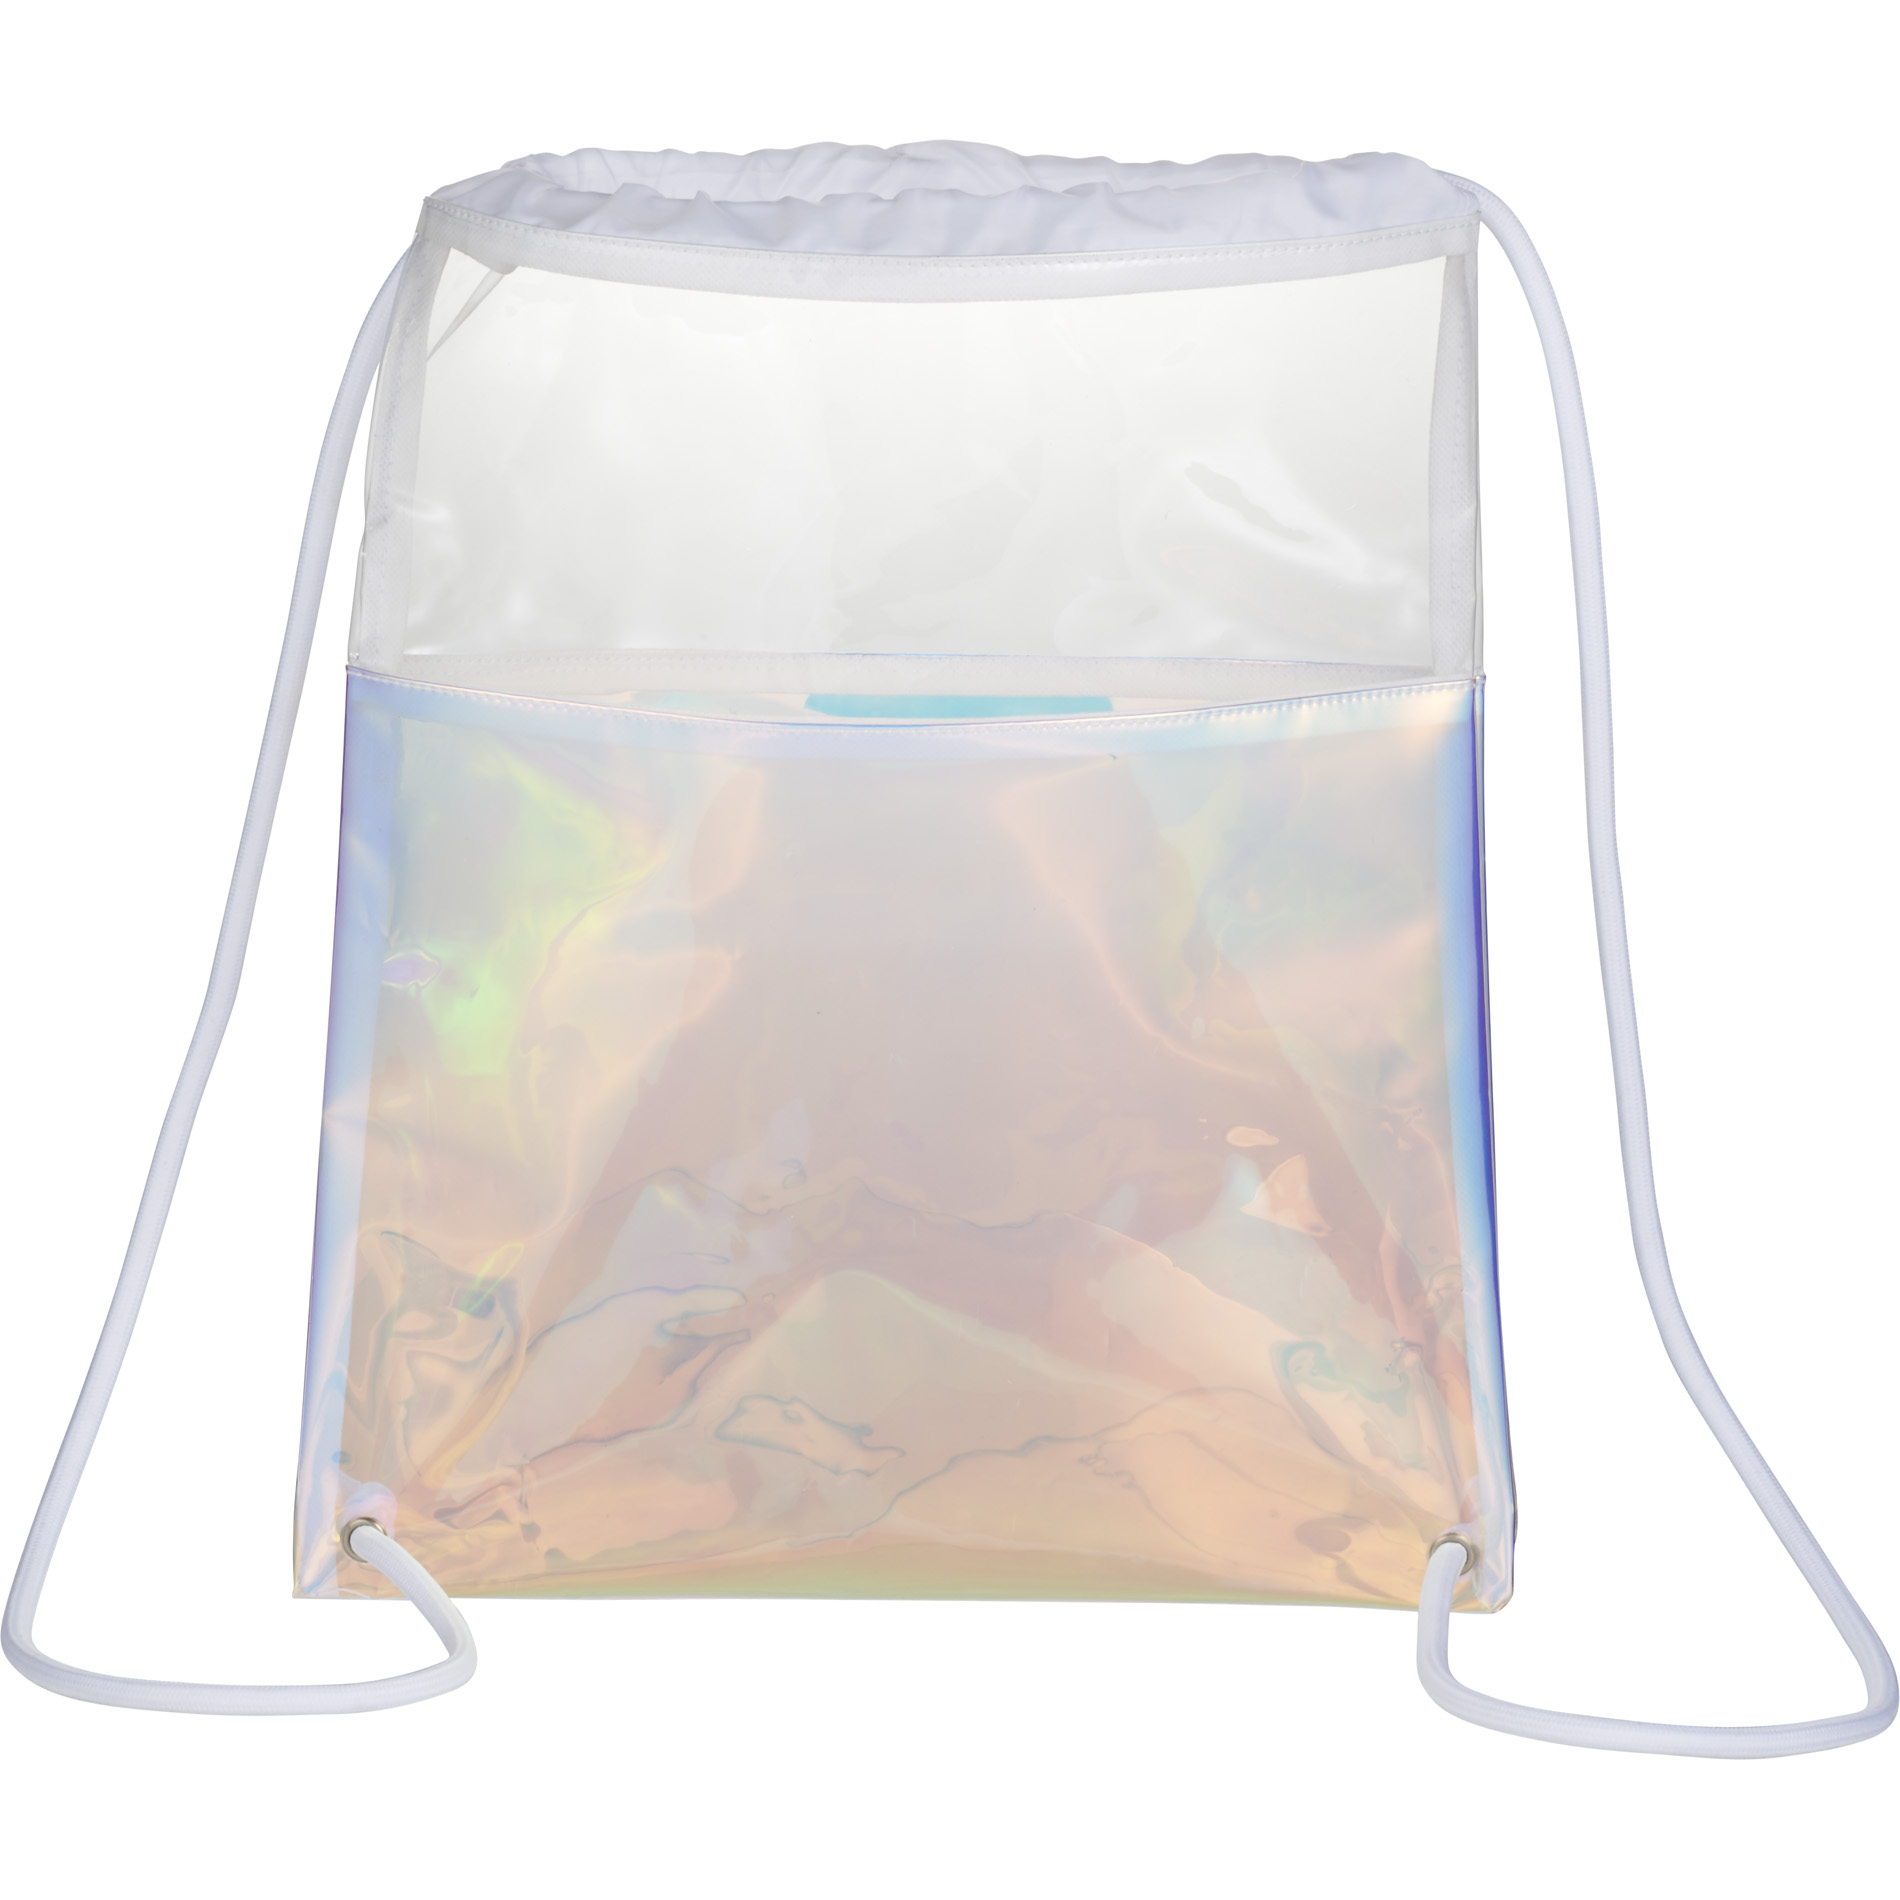 LEEDS 3005-37 - Iridescent Drawstring Bag